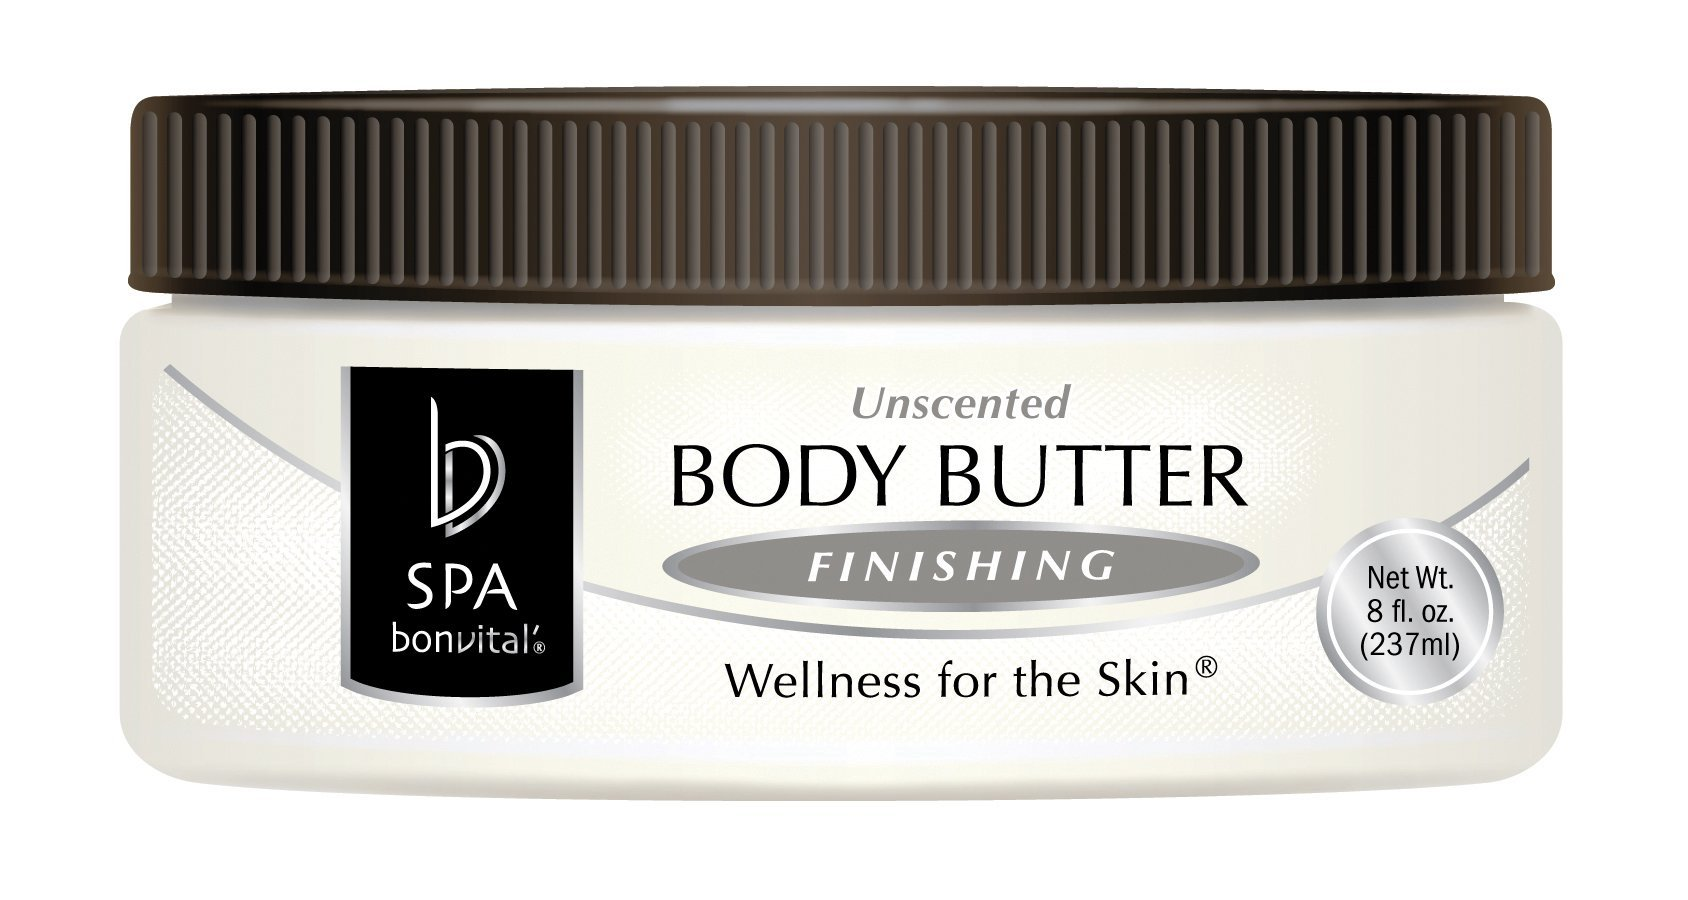 Bon Vital' Body Butter, Unscented Whipped Moisturizer with Cocoa Butter, Shea Butter, Beeswax, Hypoallergenic Lotion, Professional Spa Quality Thick Lotion for Dry Patches & Skin, 1 Gallon Jar